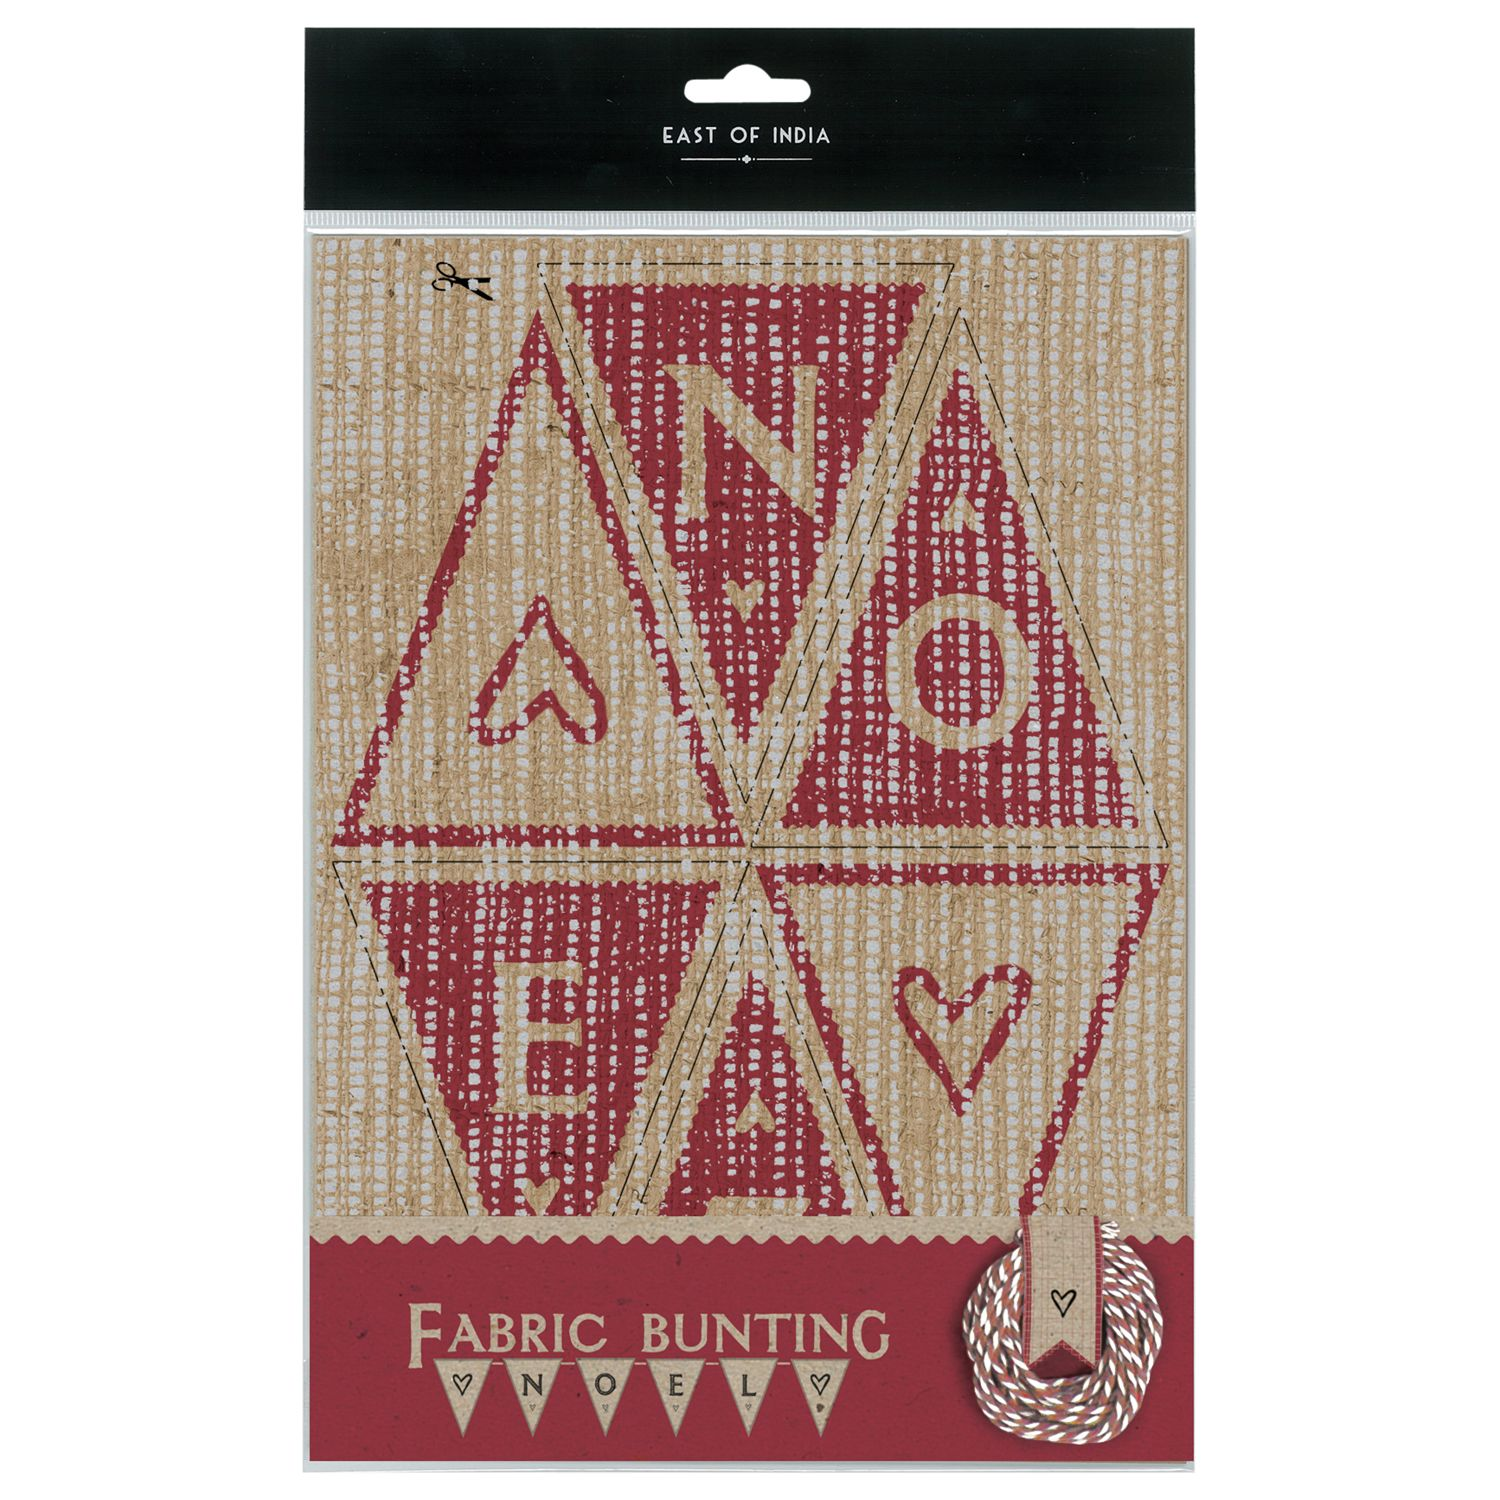 East of India East of India Noel Fabric Bunting Kit, Brown/Red